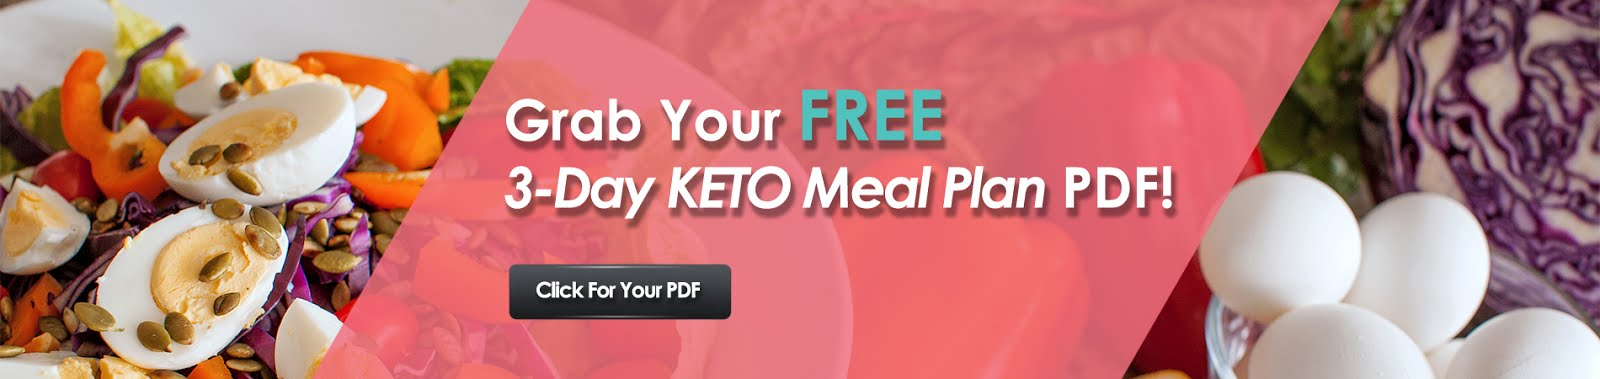 Free 3-Day KETO MEal